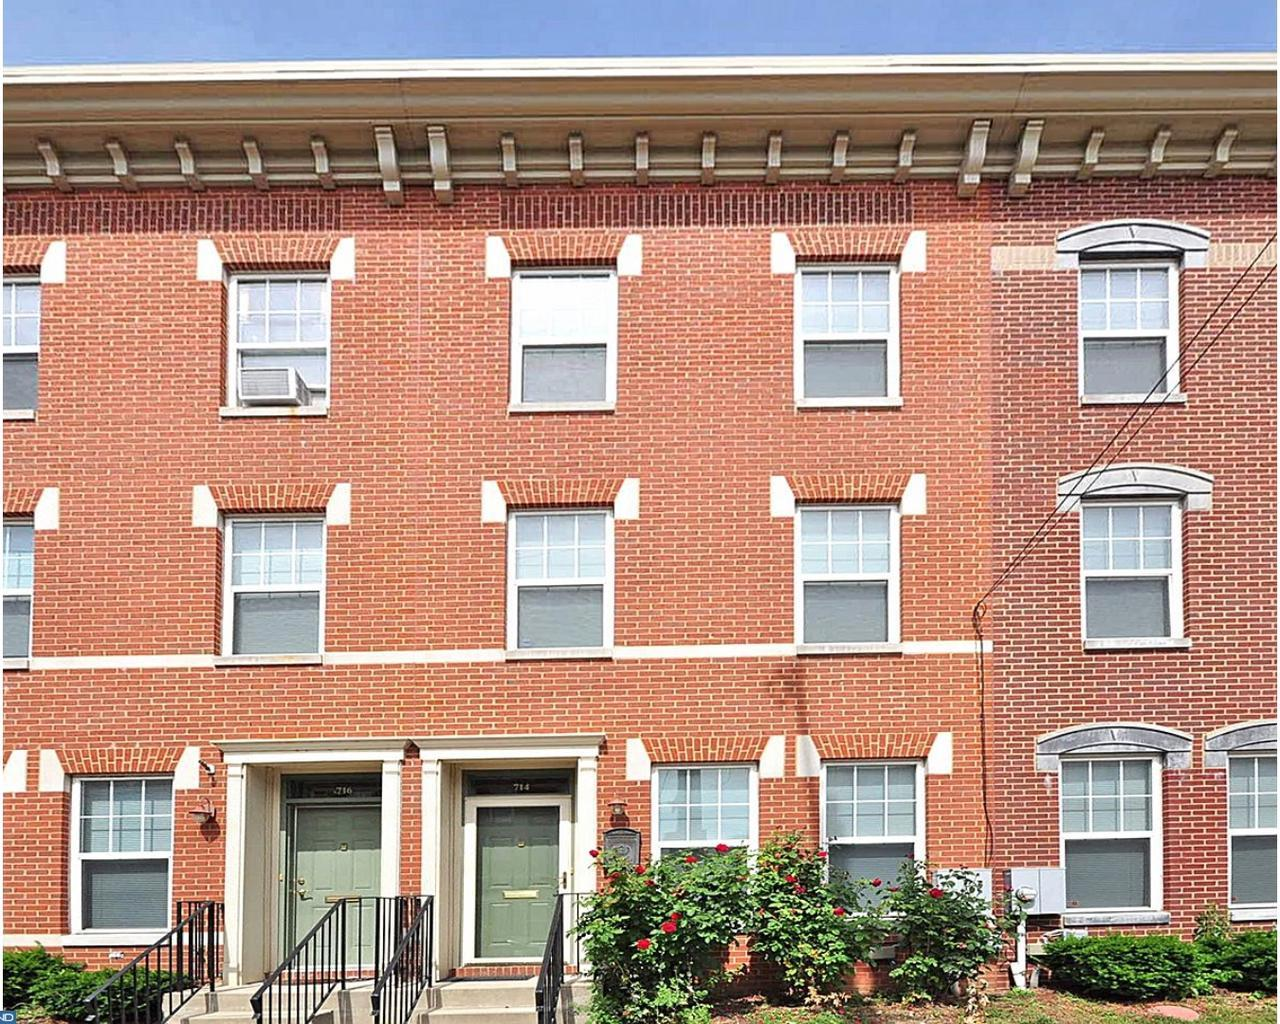 Property for sale at 714 S 13TH ST, Philadelphia,  PA 19147